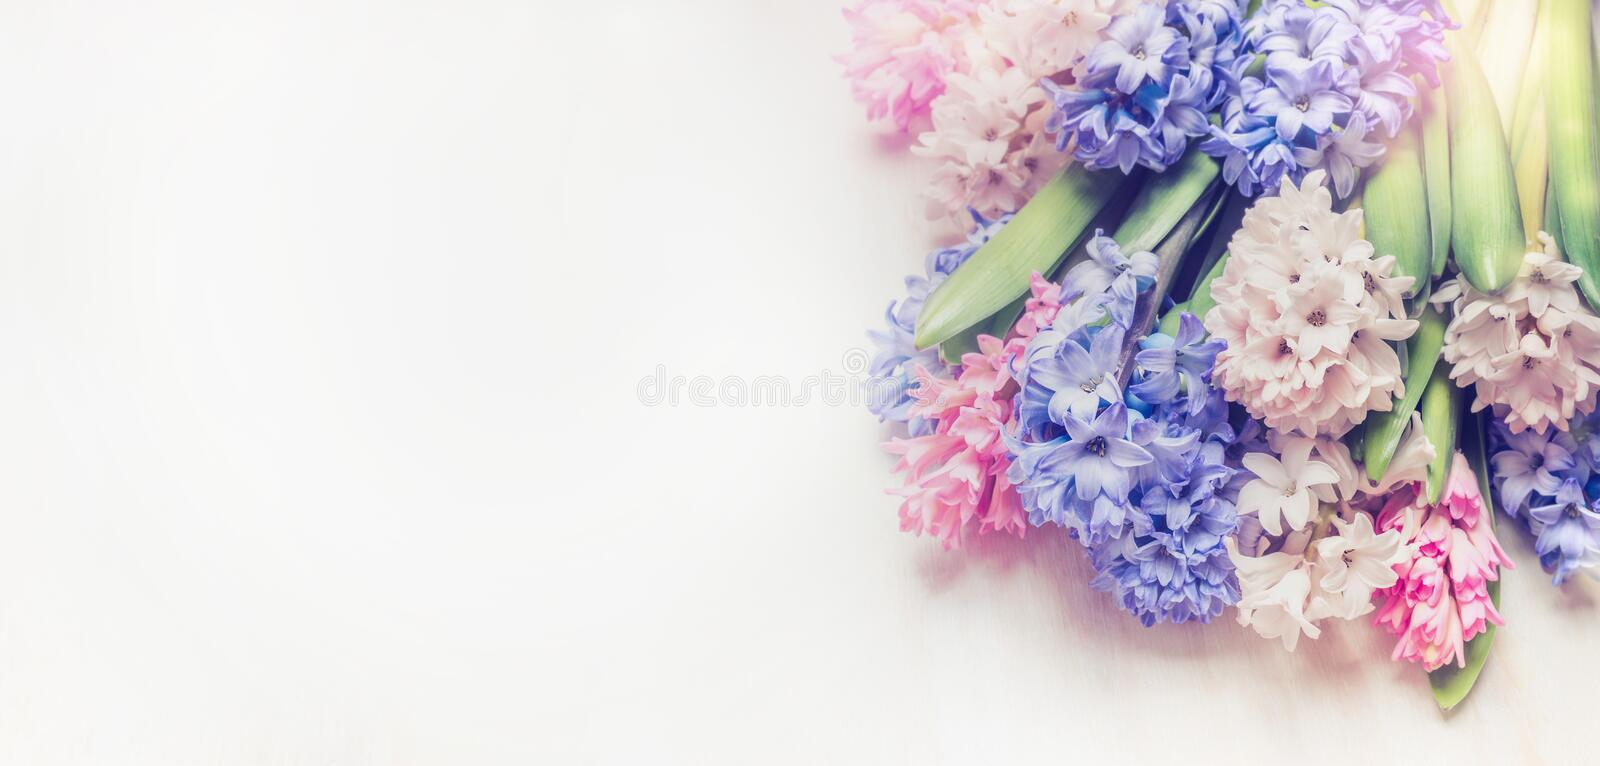 Fresh colorful Hyacinths bunch on light wooden background, floral border. royalty free stock photo